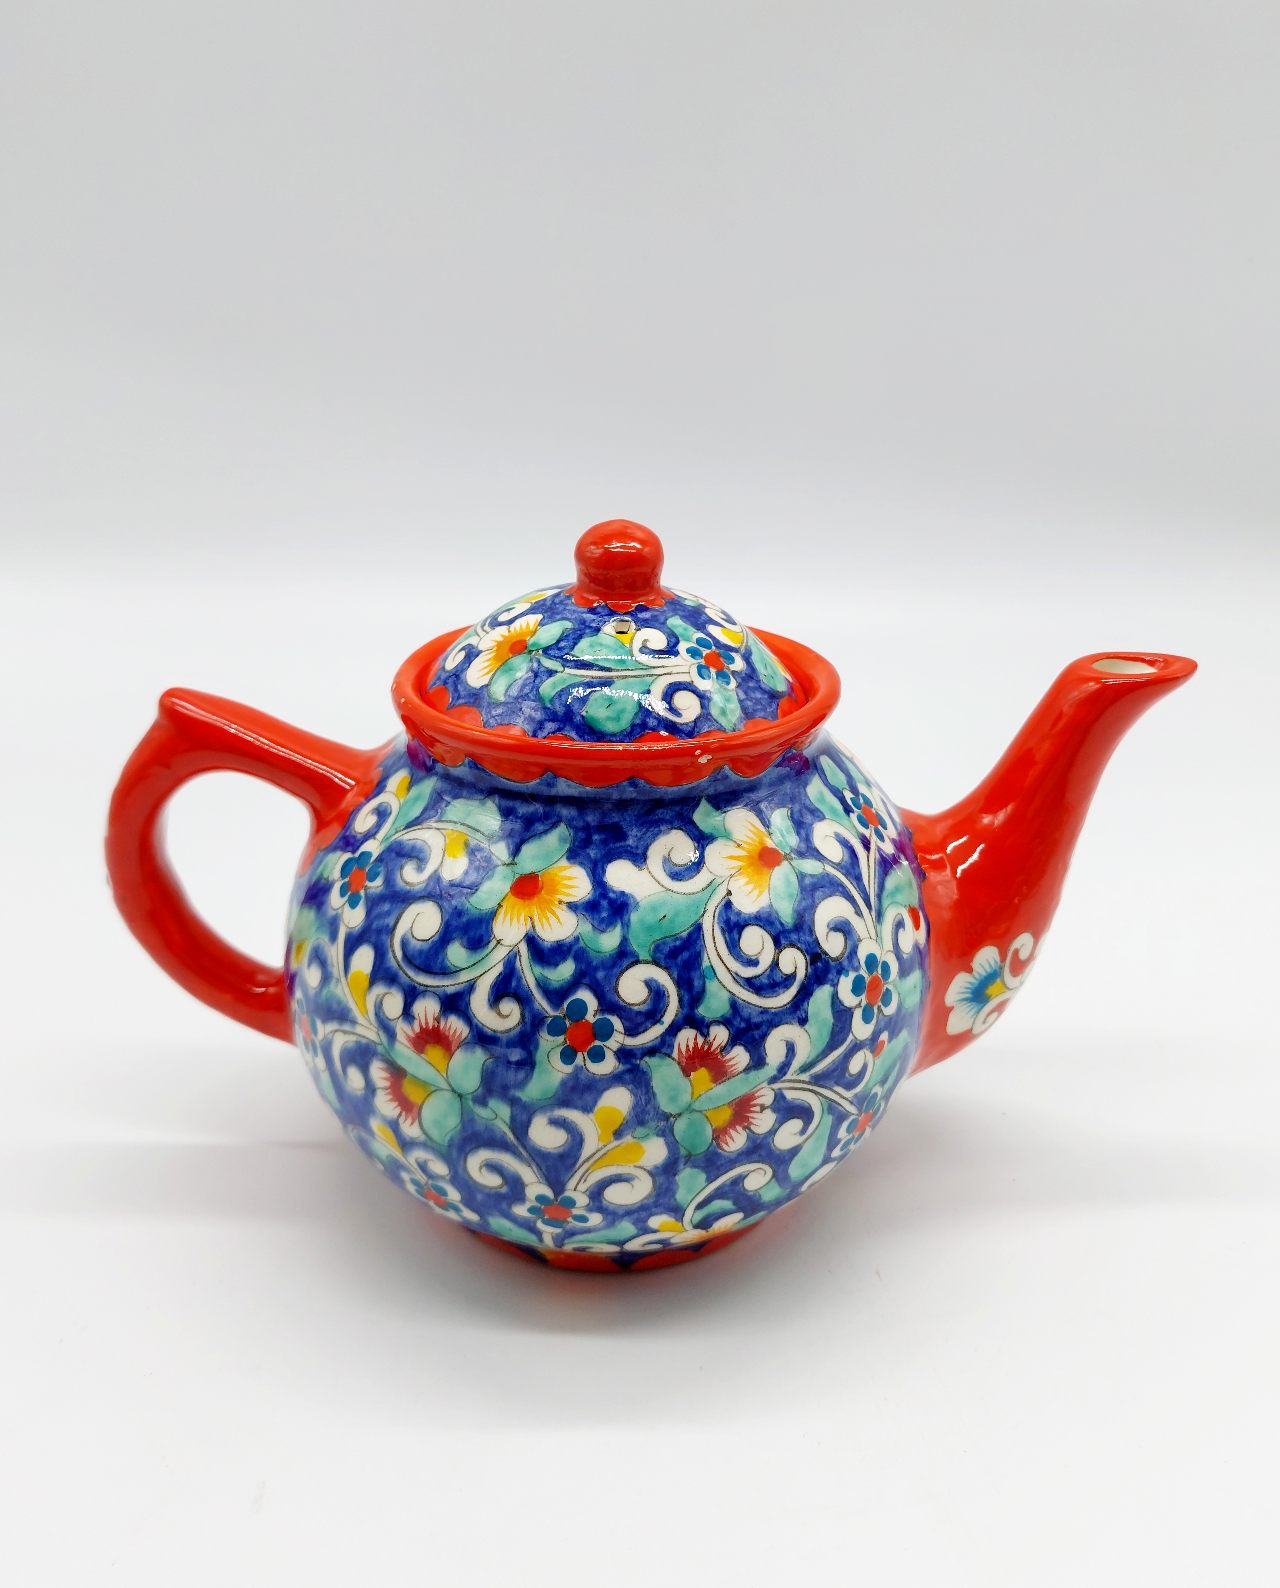 Teapot handmade hand painted with flowers